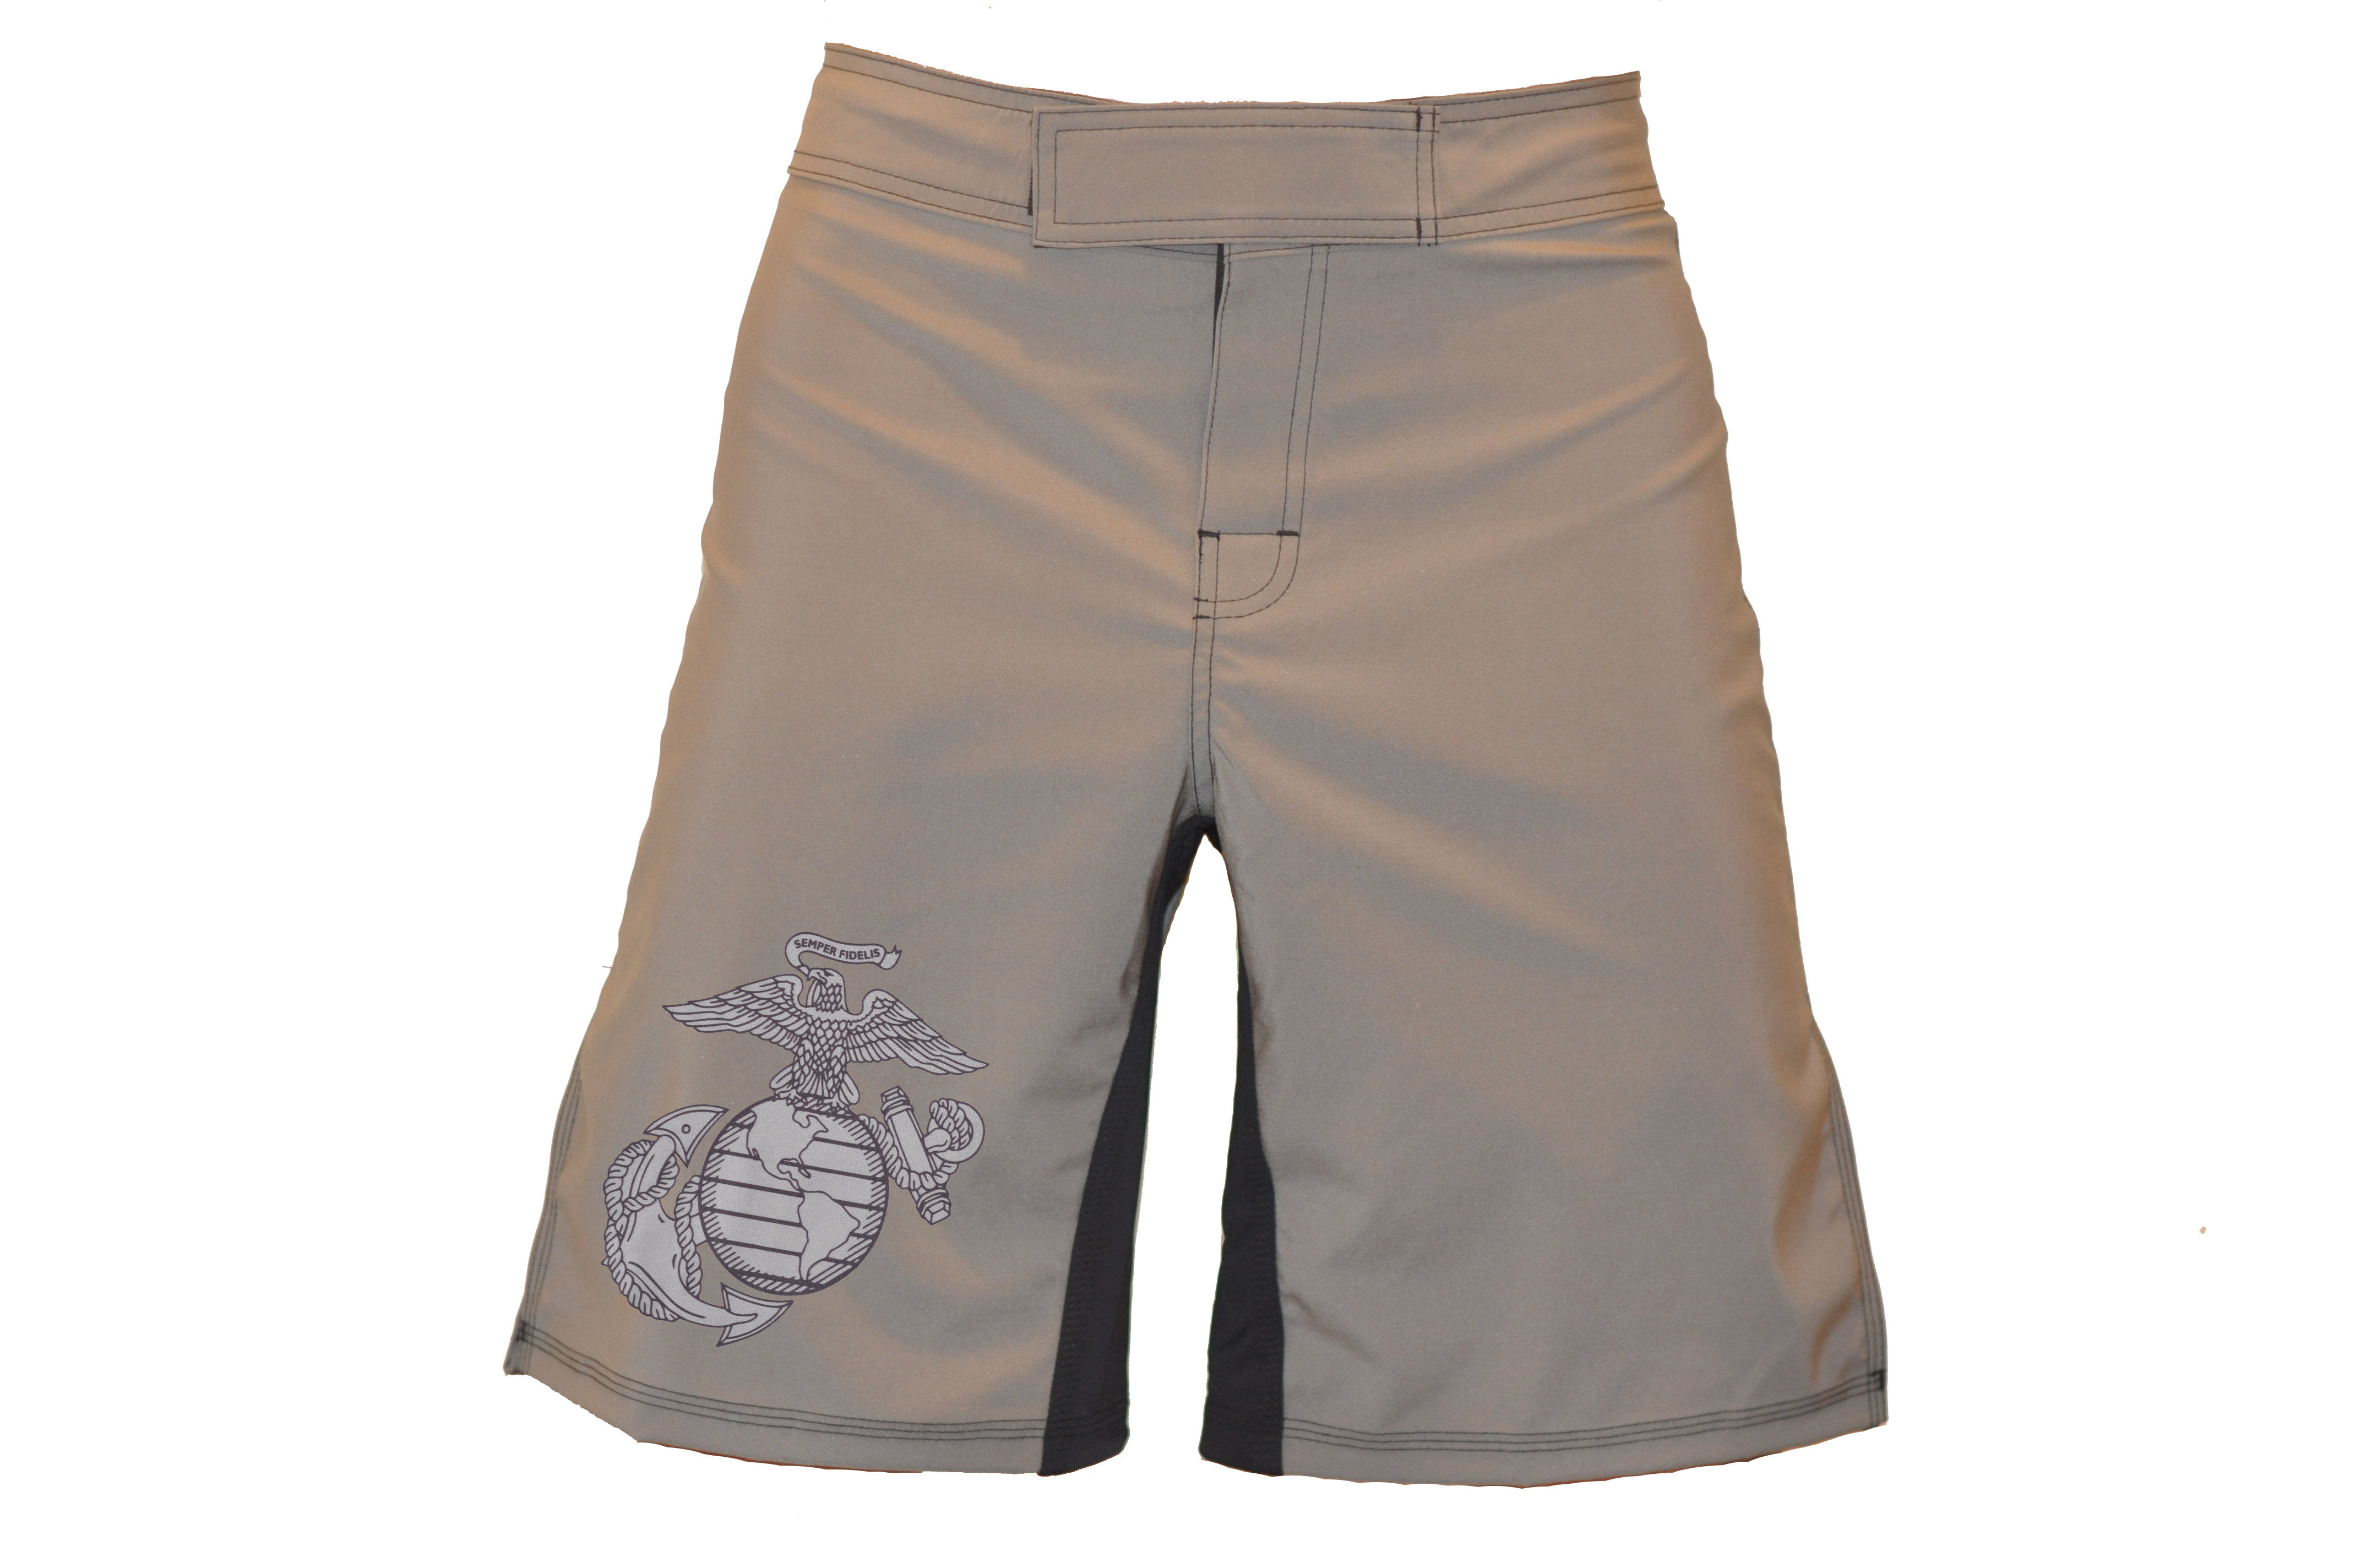 Grey_20shorts_20usmc_20anchor_20globe_20and_20eagle_original